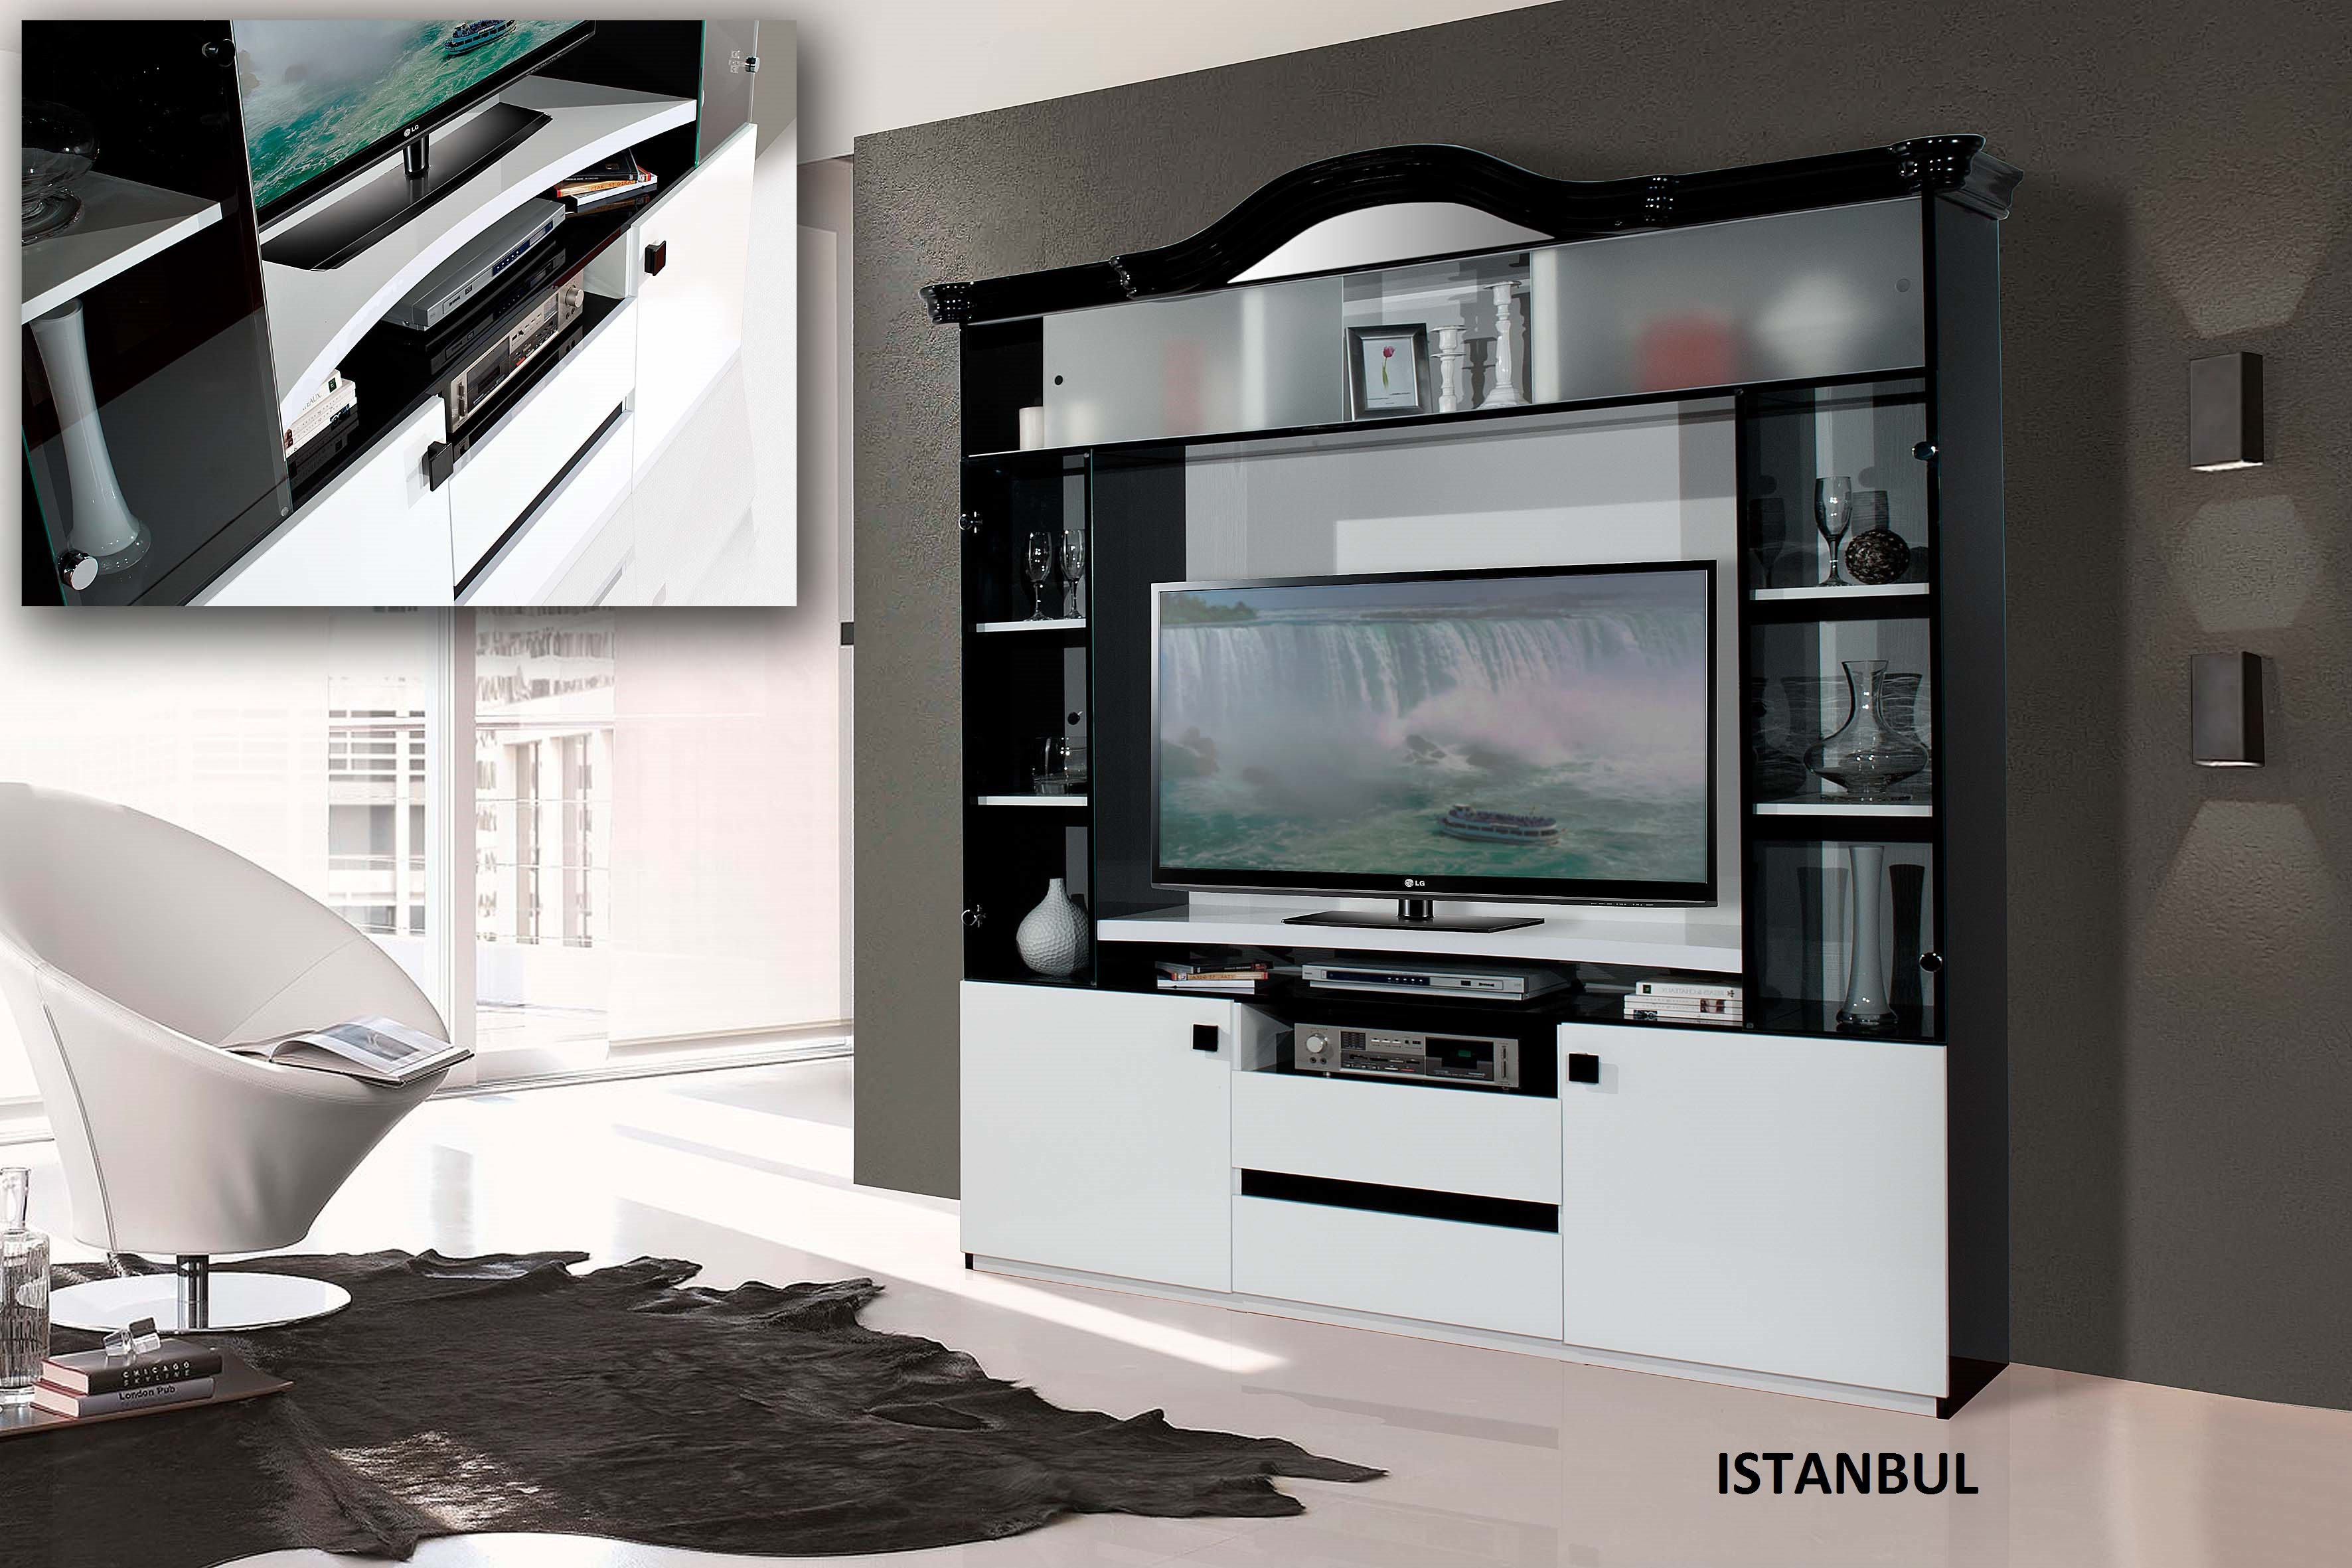 meuble tv istambul nkl meuble wassa et deco. Black Bedroom Furniture Sets. Home Design Ideas